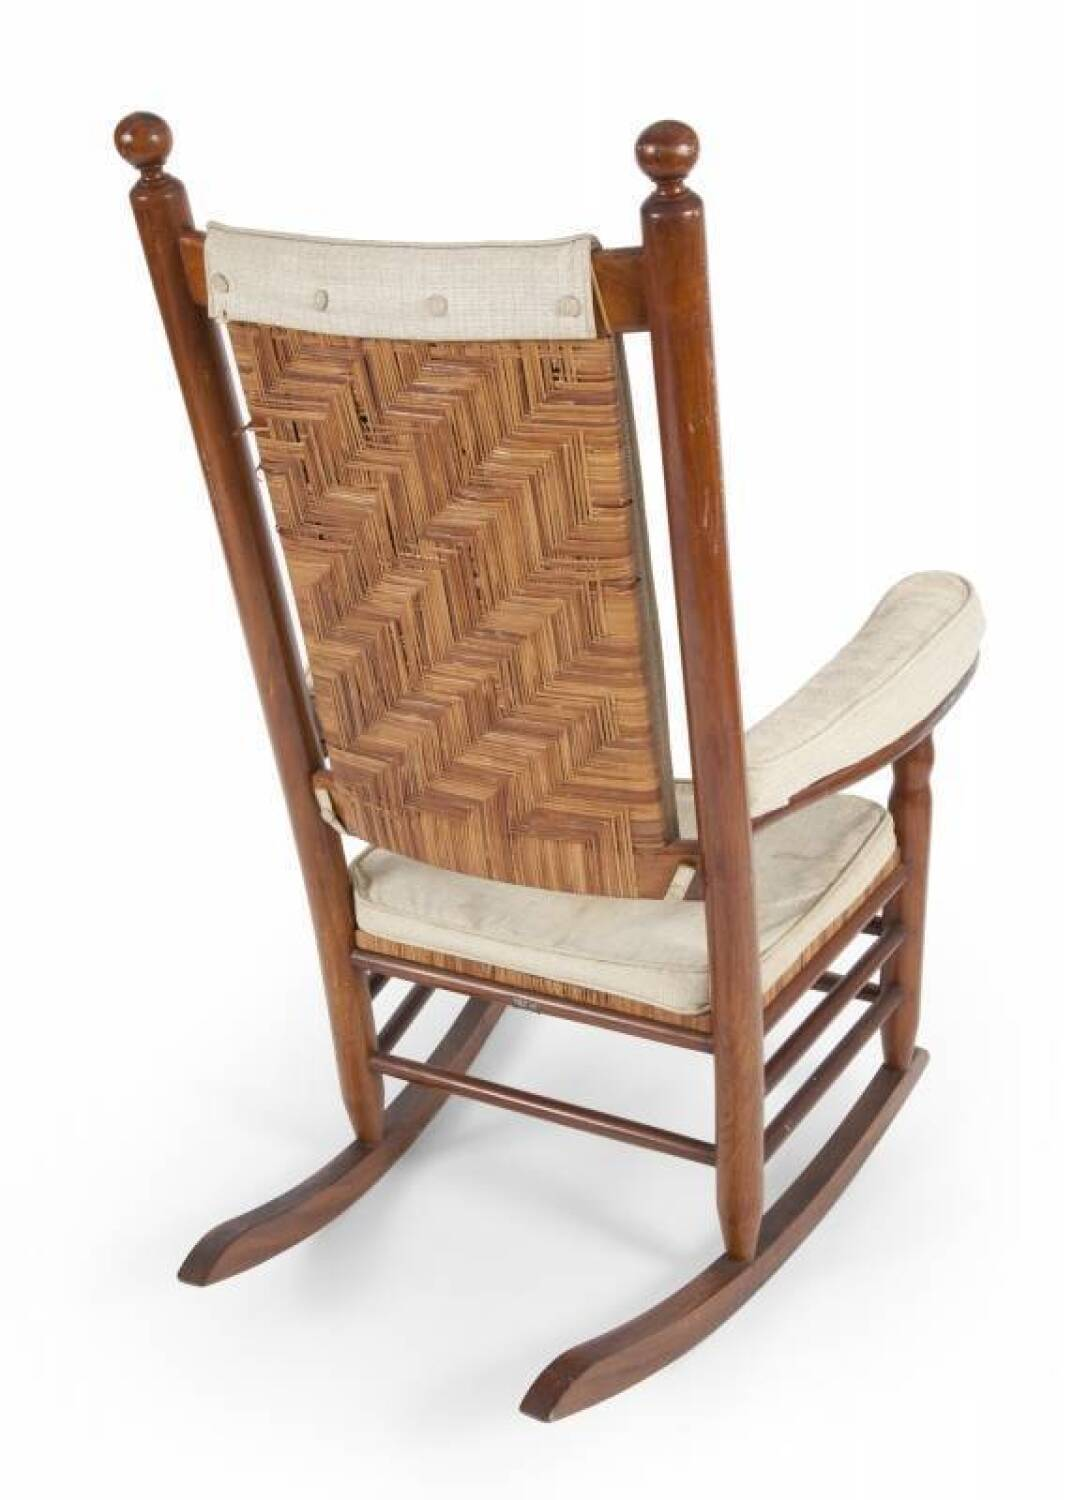 John F. Kennedy Rocking Chair - Current price: $70000